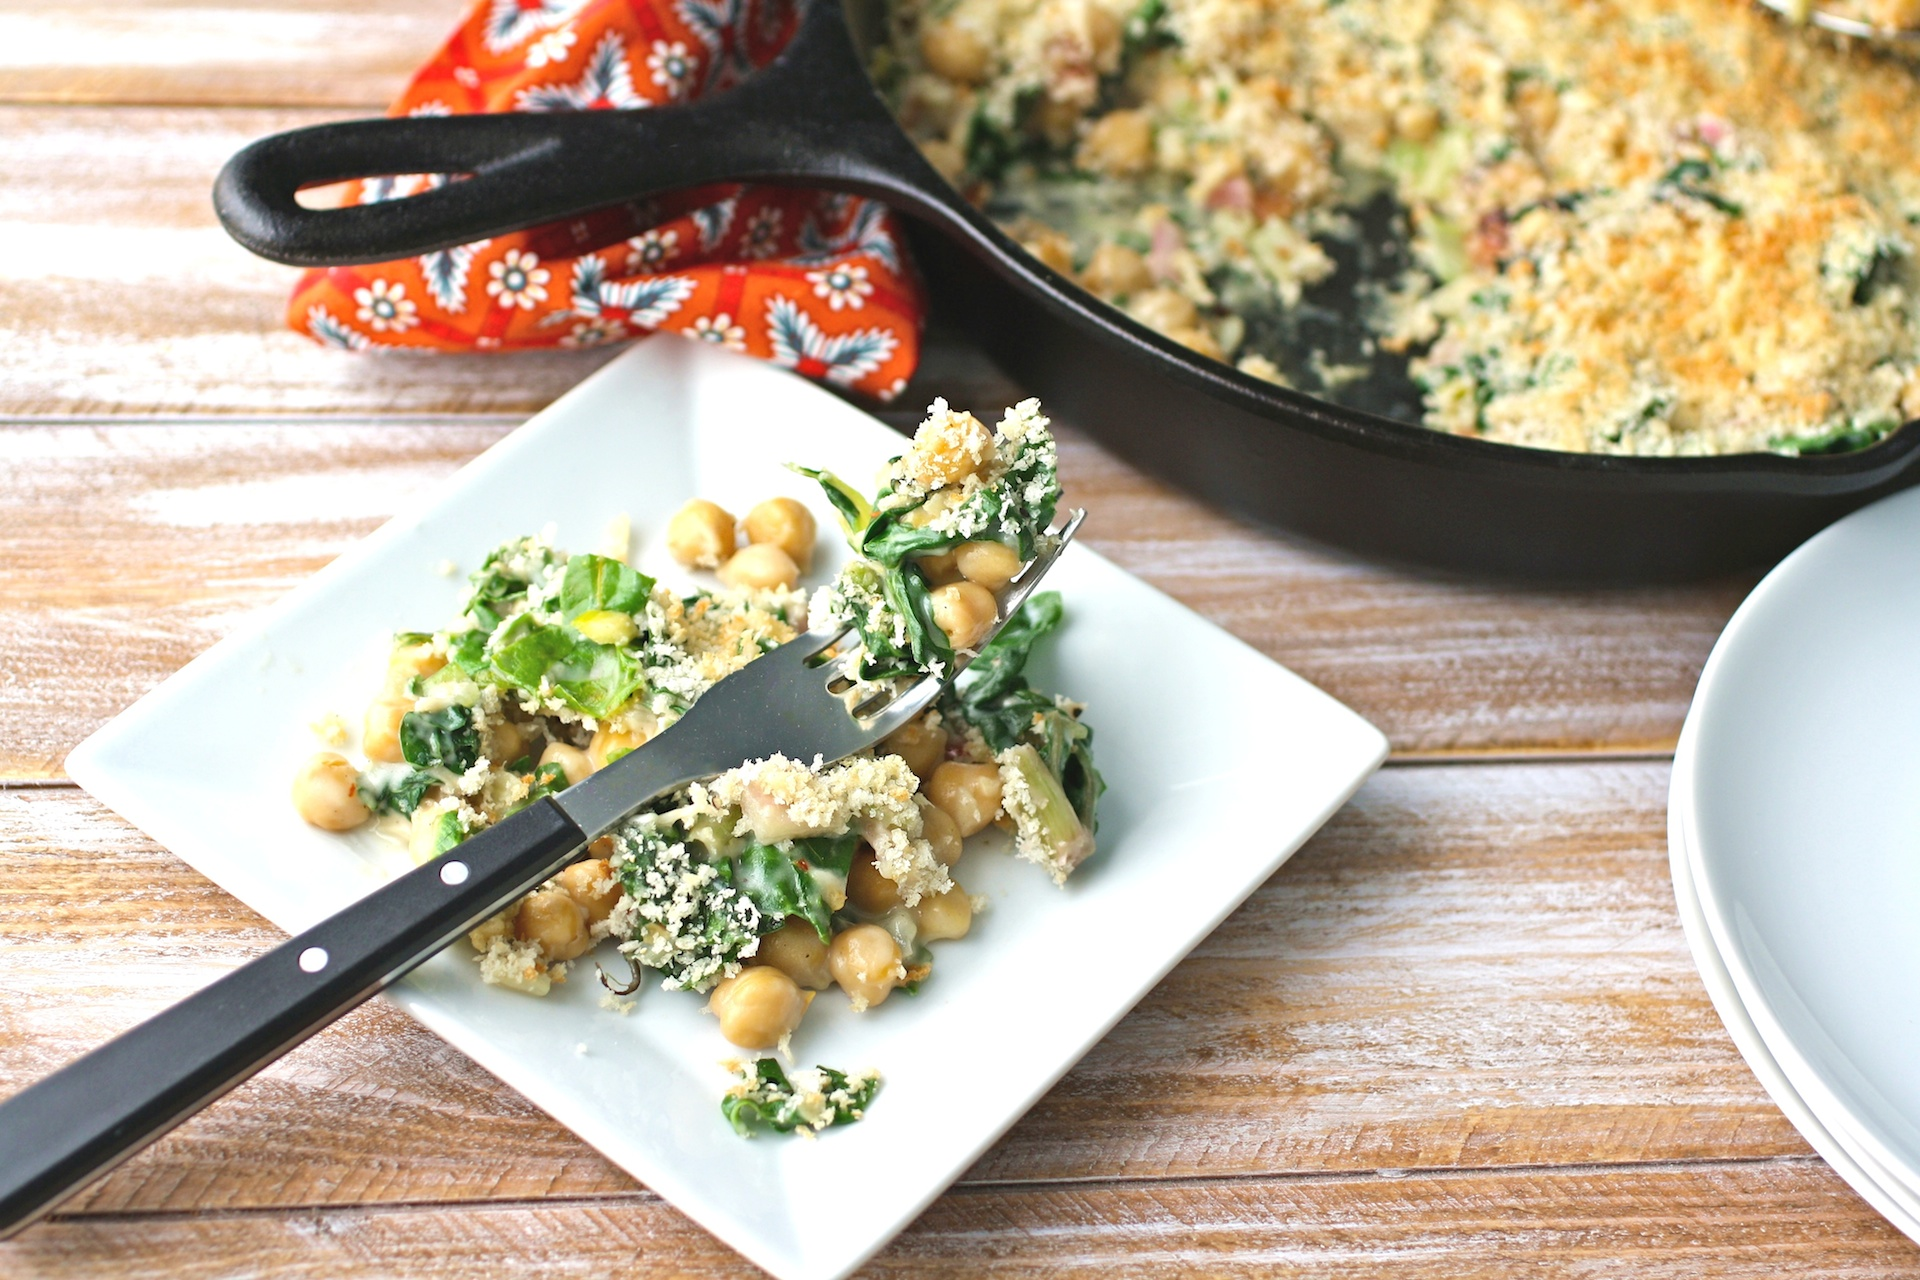 Dig in to a dish of Creamy Skillet Swiss Chard and Chickpeas with Crunchy Breadcrumbs